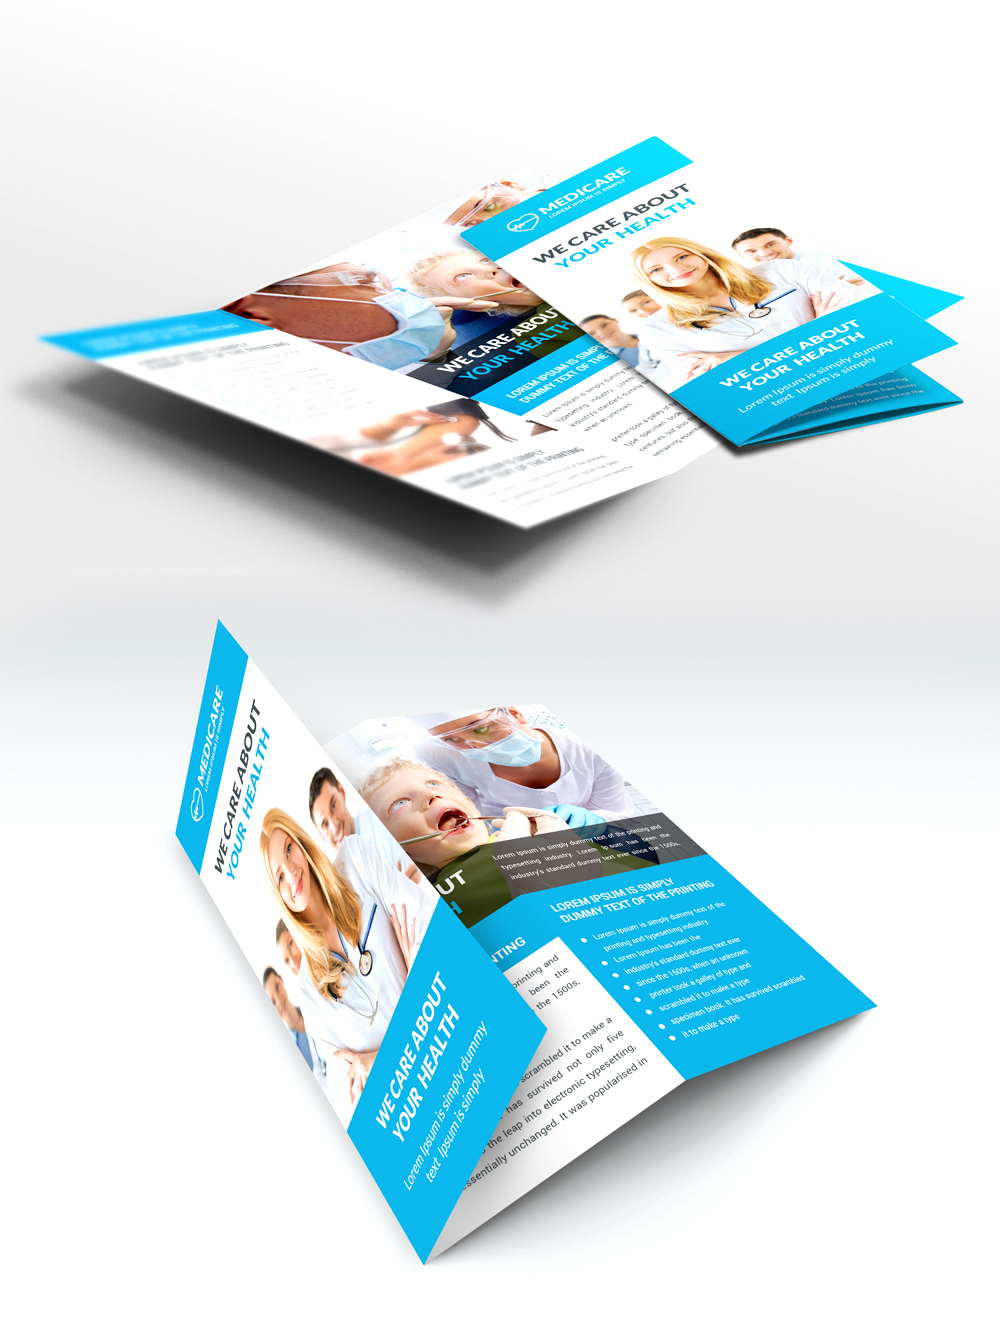 Medical Care And Hospital Trifold Brochure Template Free PSD - Brochure template psd